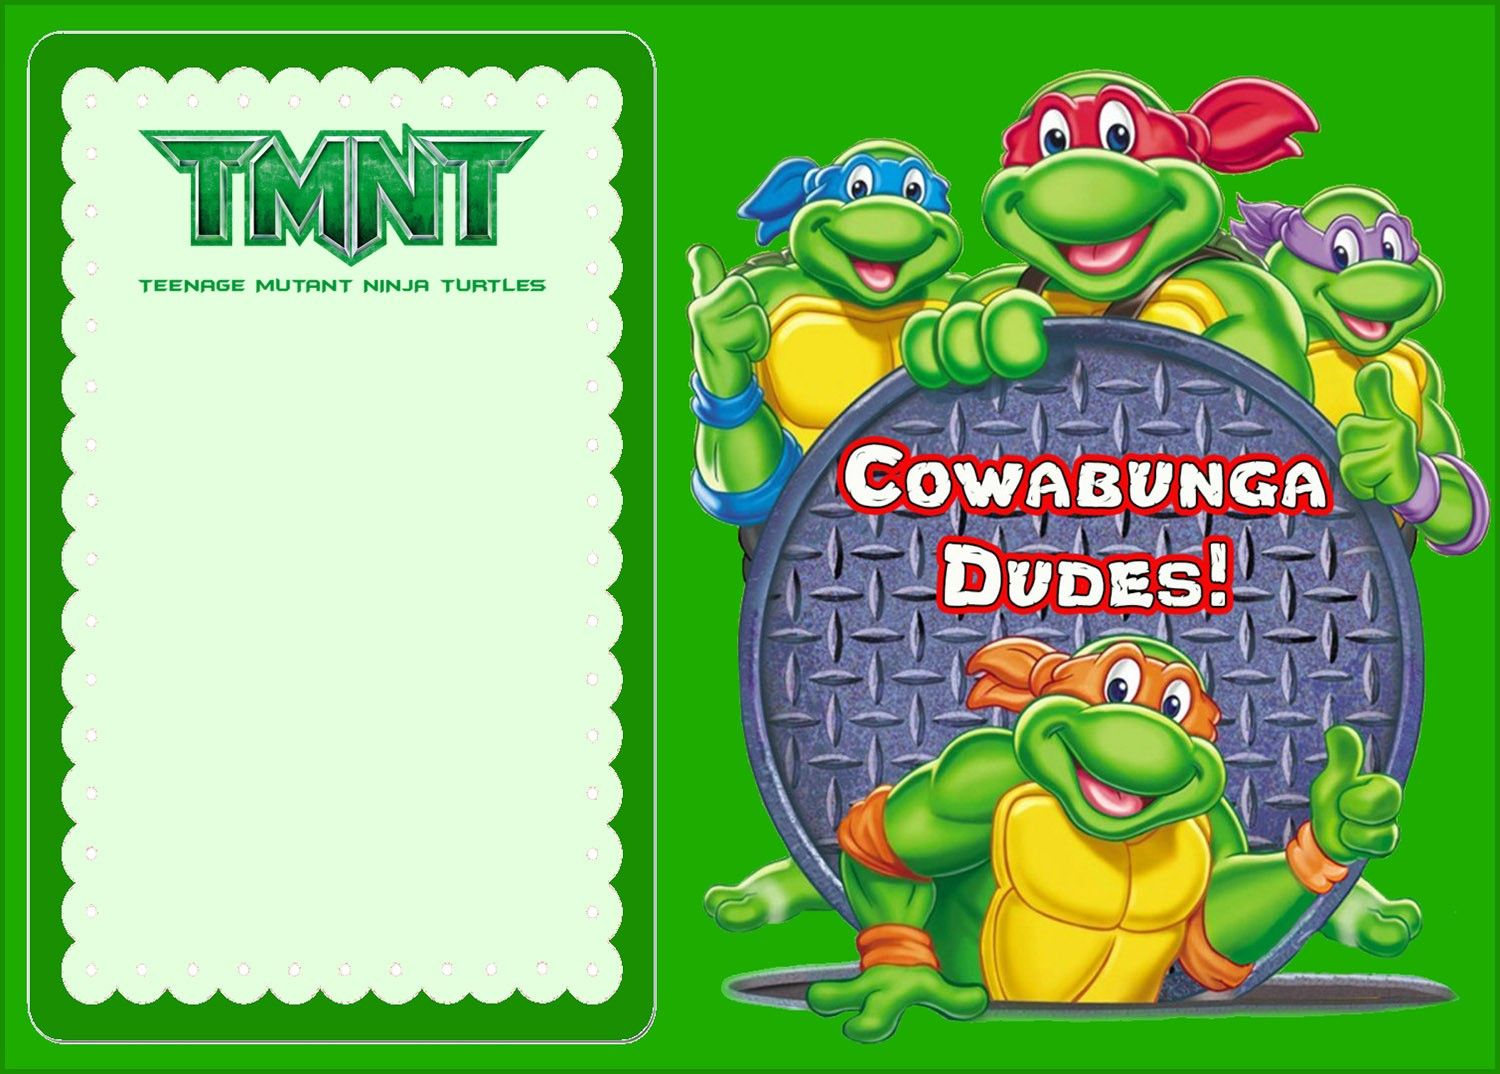 Free Online Ninja Turtle Invitation | Coolest Invitation Templates - Free Printable Ninja Turtle Birthday Invitations